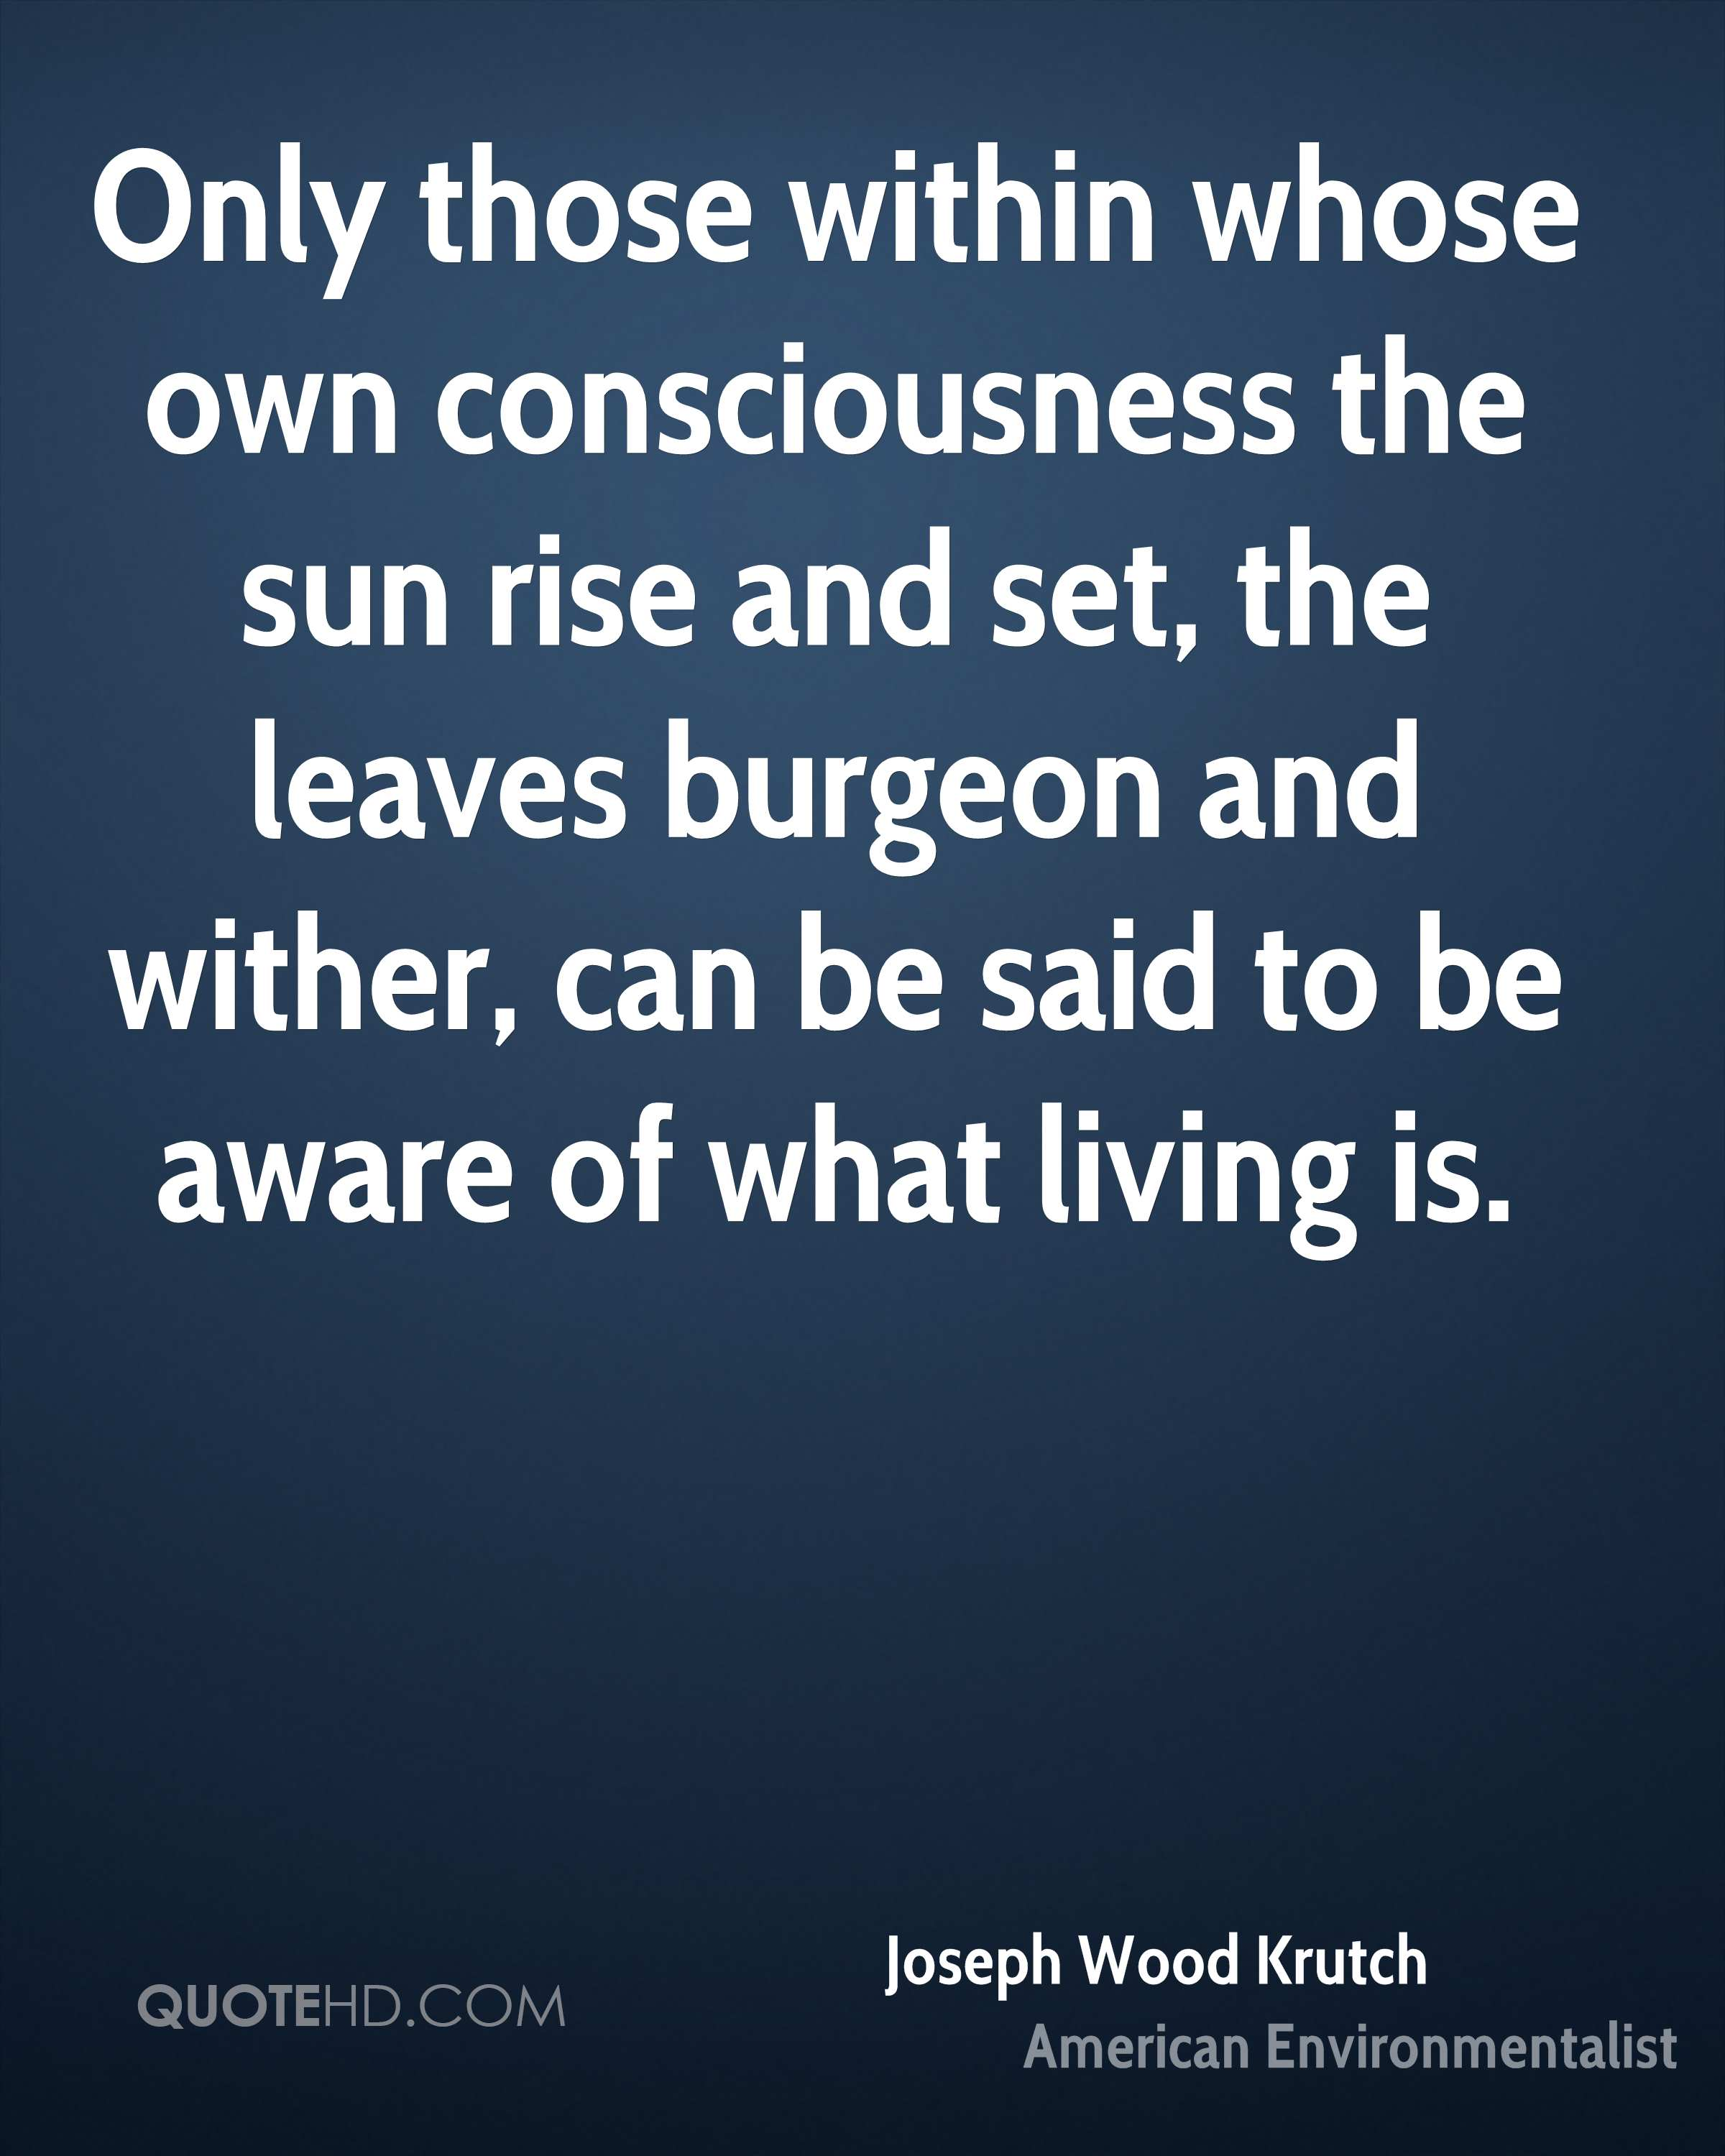 Only those within whose own consciousness the sun rise and set, the leaves burgeon and wither, can be said to be aware of what living is.